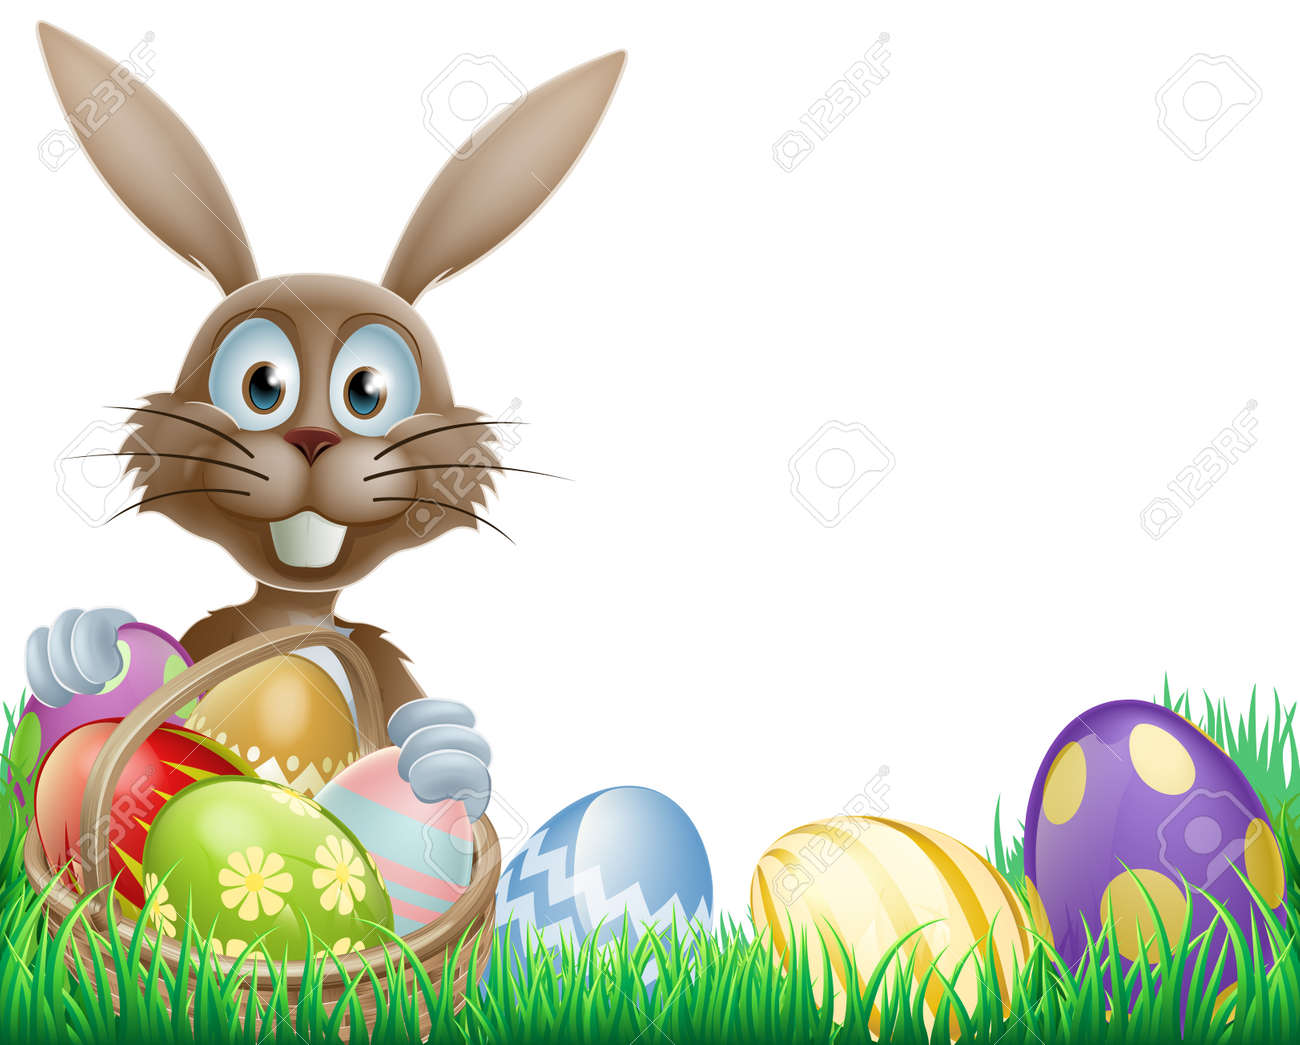 48 112 easter bunny stock vector illustration and royalty free